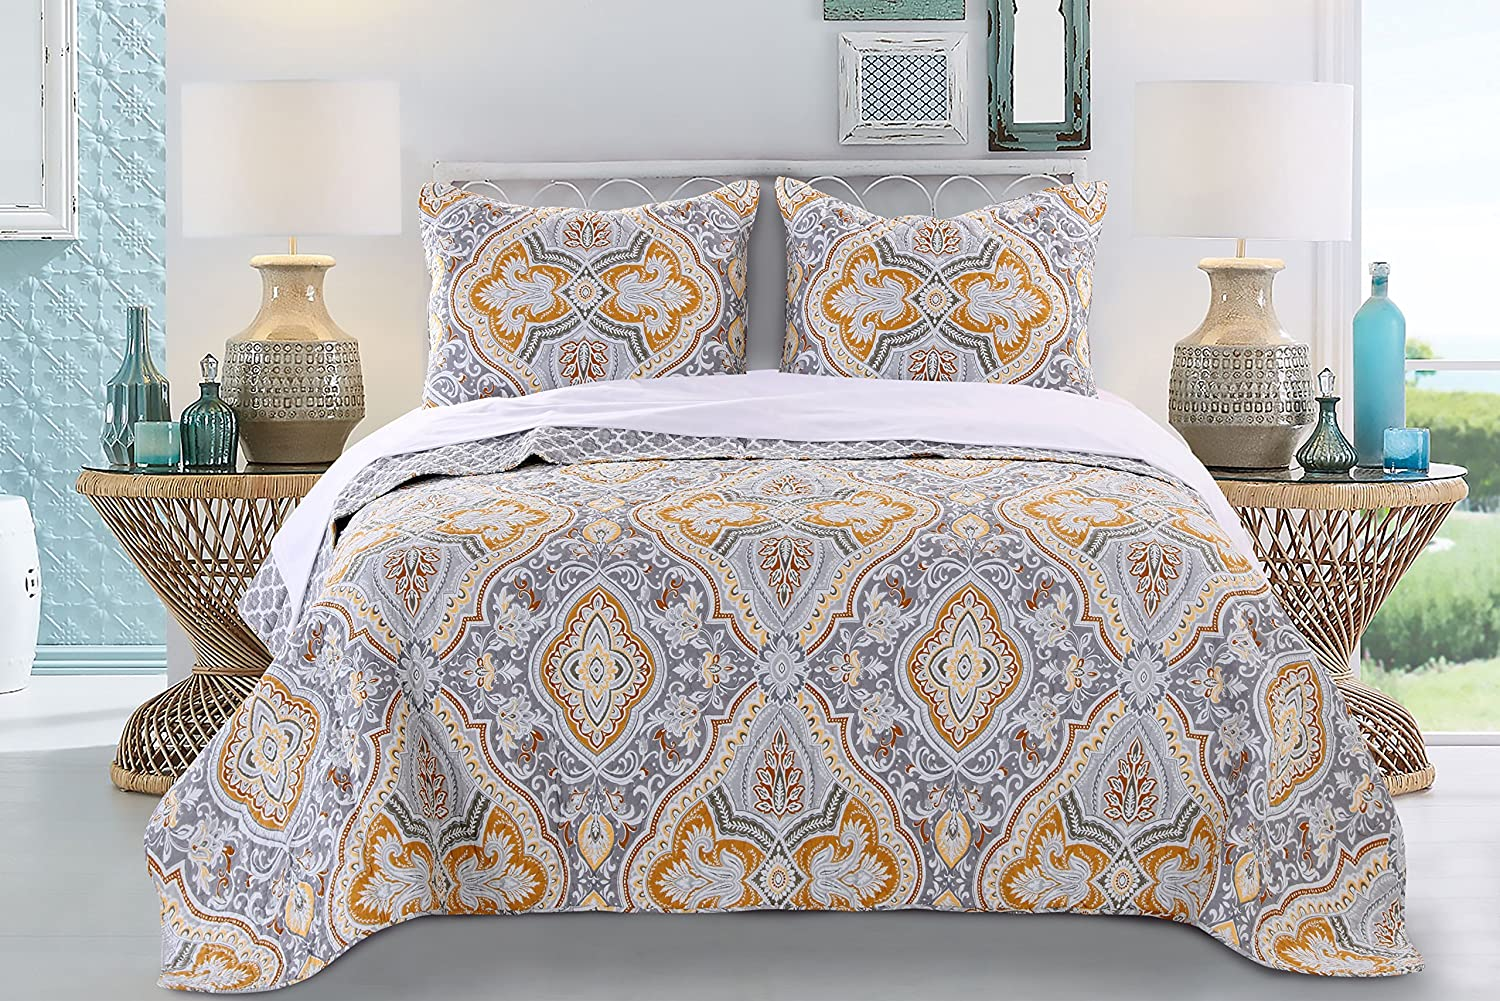 Greenland Home 3 Piece Valhalla Quilt Set, King, Gold